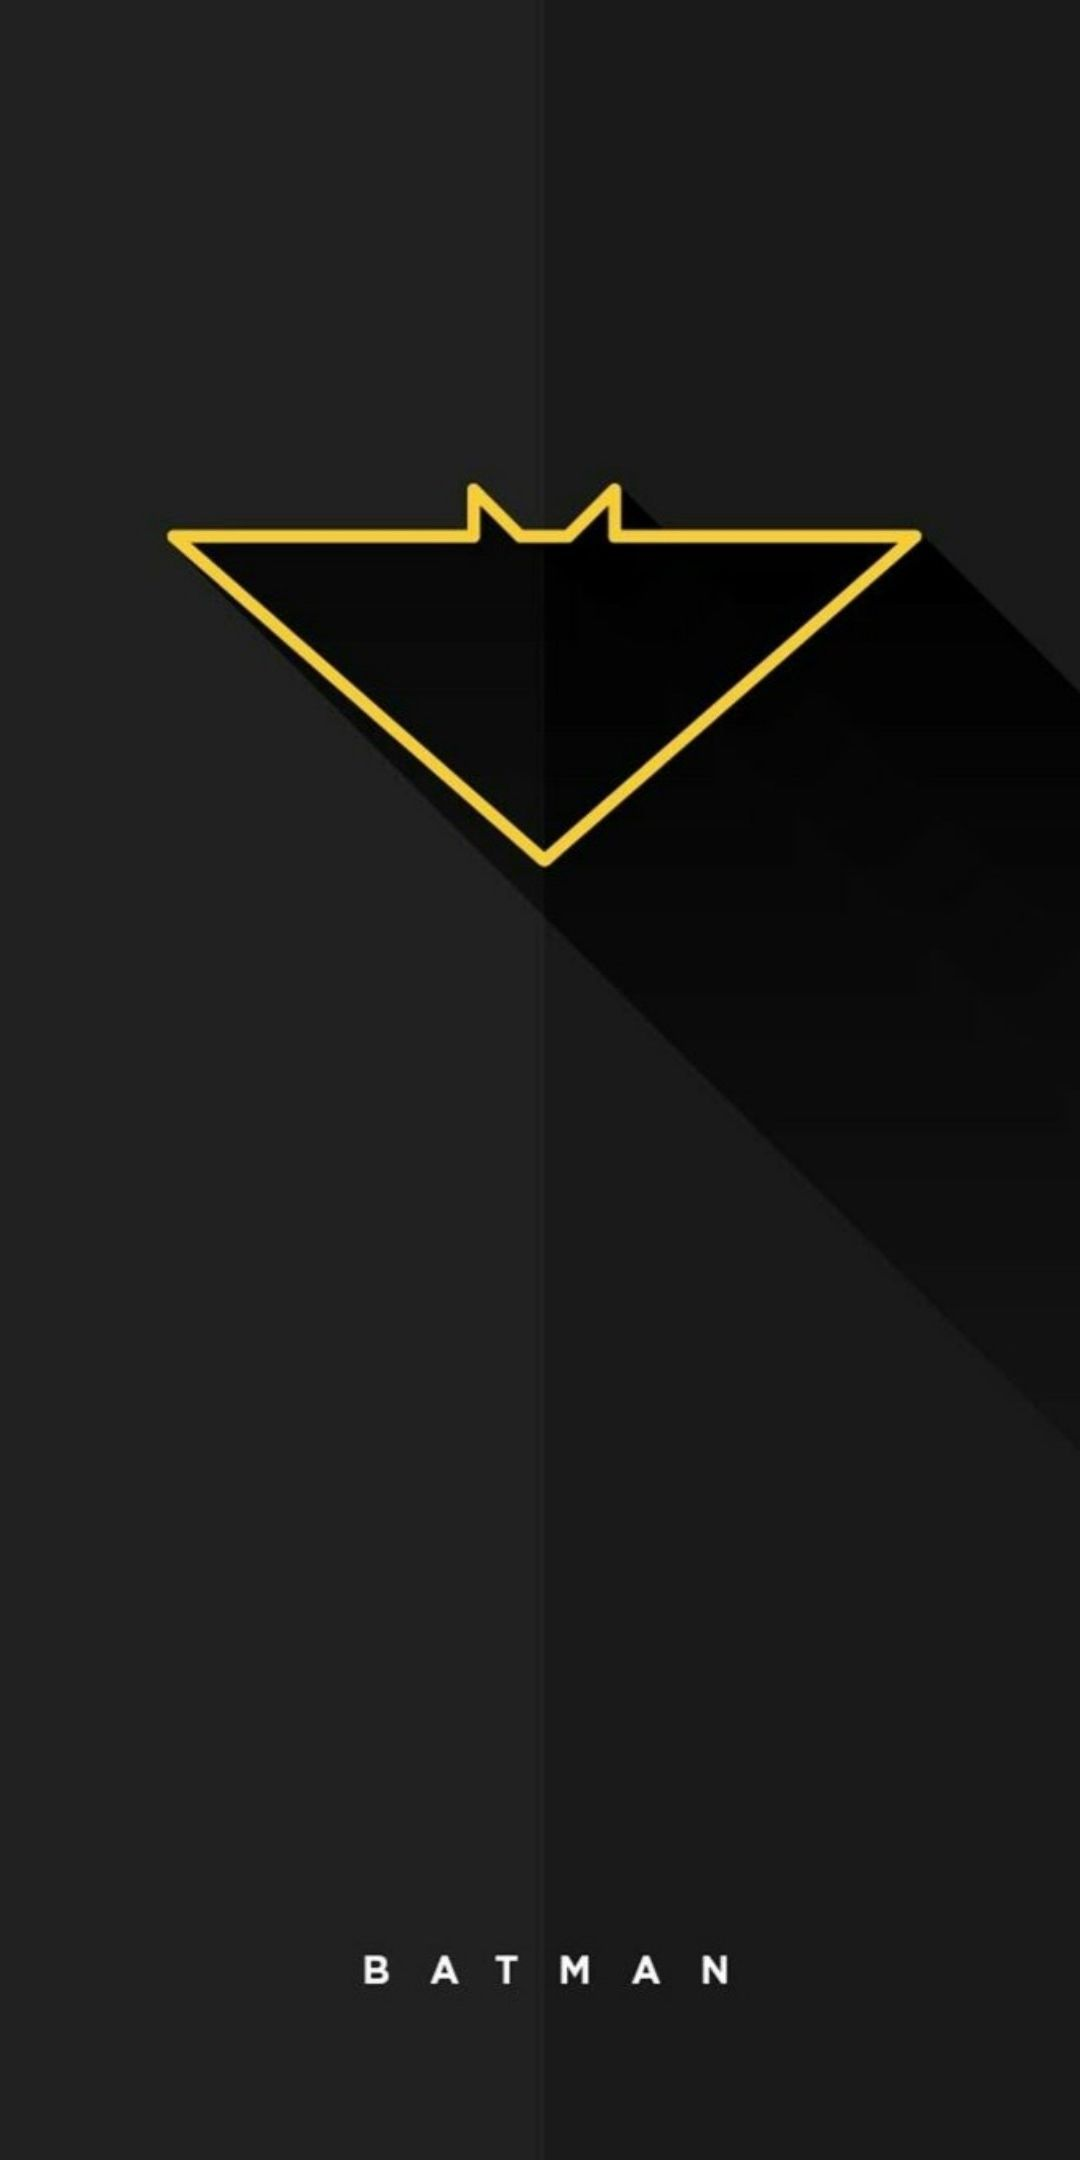 Batman Minimal iPhone Wallpaper